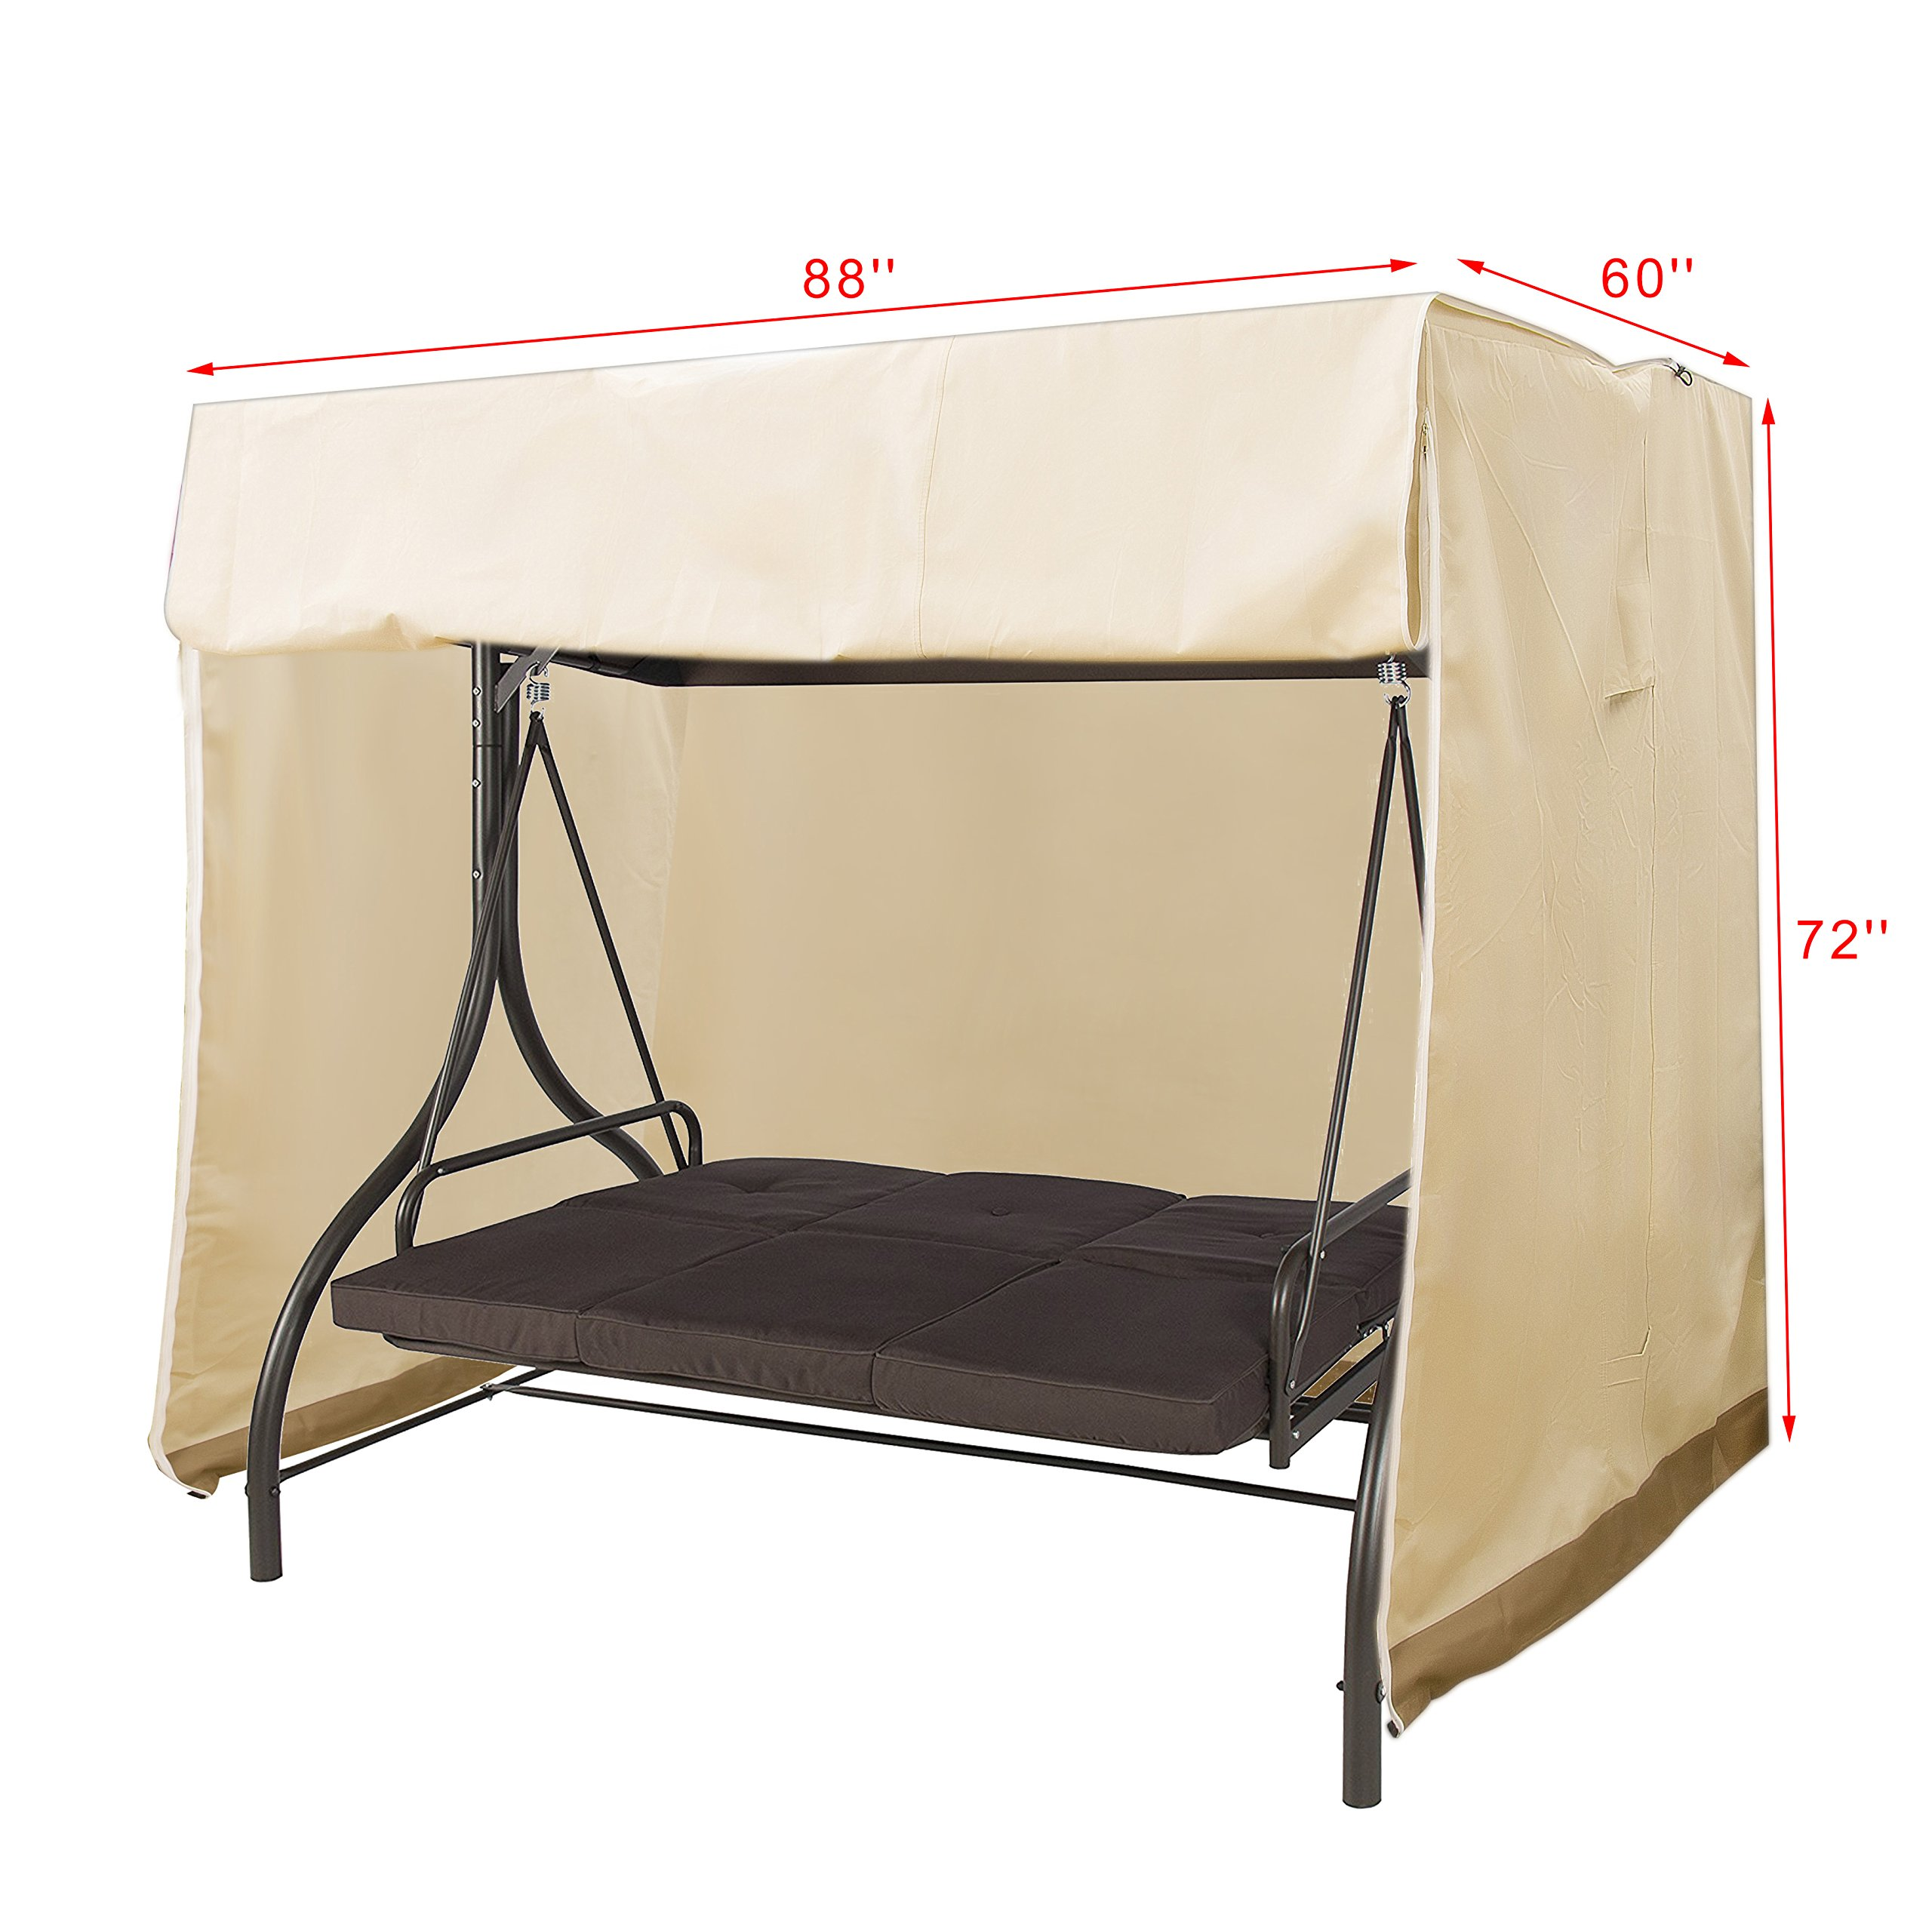 APARESSE Outdoor 3 Triple Seater Hammock Swing Glider Canopy Cover Beige, All Weather Protection, Water Resistant, 88''L x 60''W x 72''H by APARESSE (Image #5)